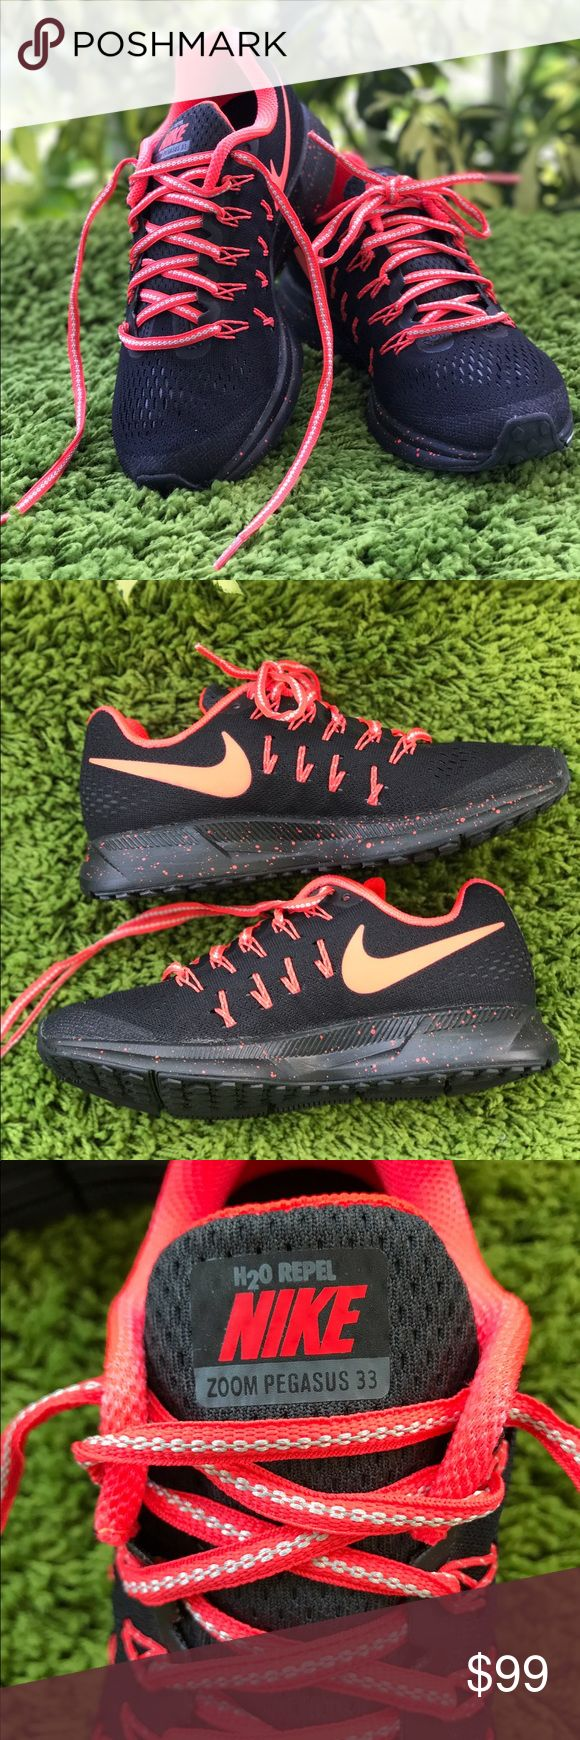 NWT Nike ID Zoom Pegasus 33 W, size 6,5 Brand new, no box. Price is firm. No trades. Upper: Engineered mesh with inner sleeve, Flywire cord based lacing. Midsole: Compression molded EVA foam, heel and forefoot Zoom Air bags. Outsole:Hard-wearing carbon rubber throughout. Nike Shoes Sneakers